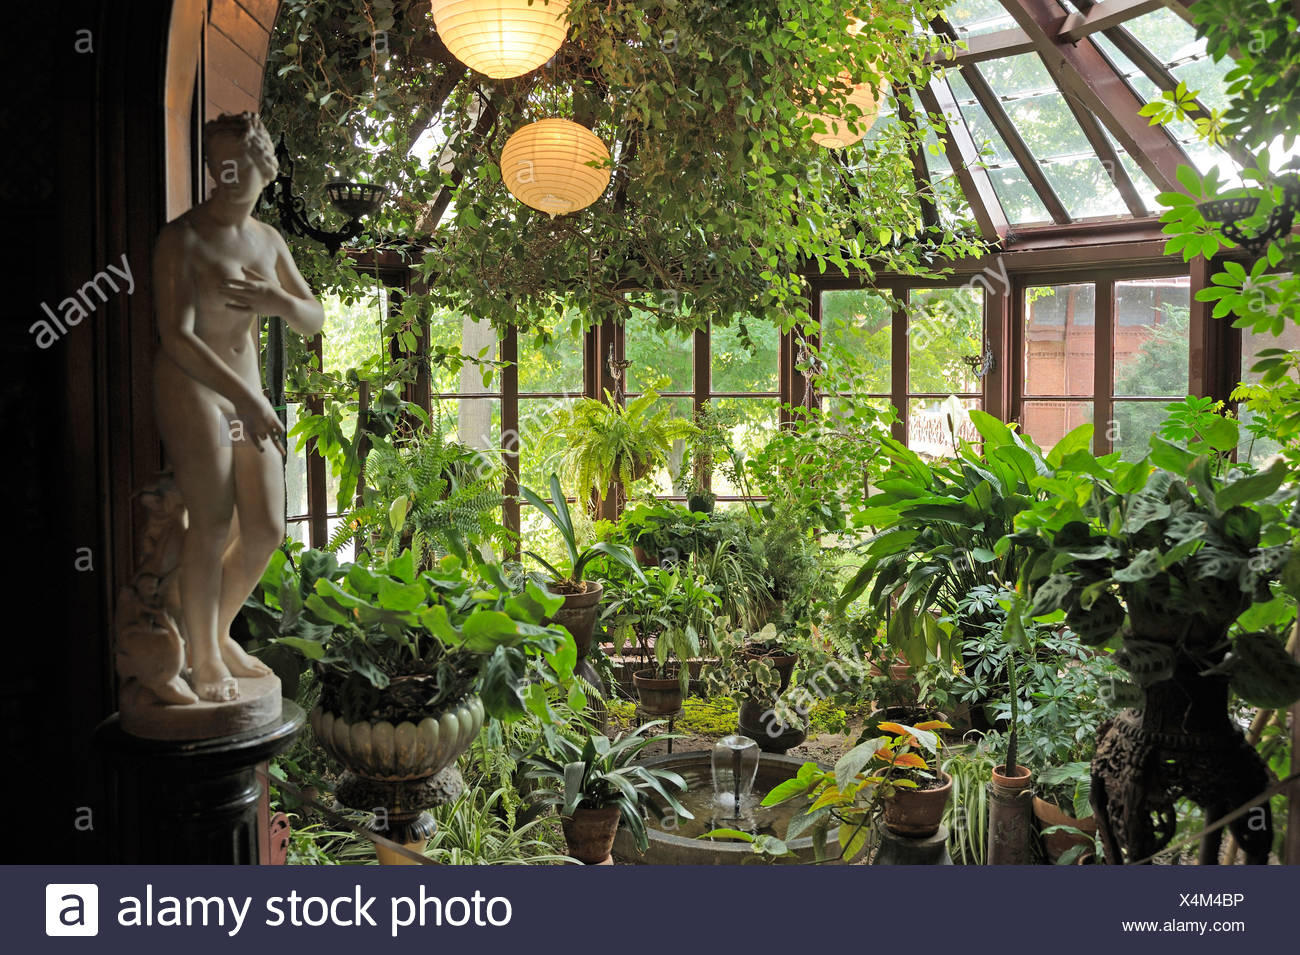 Pflanzen Für Den Wintergarten Conservatory Mark Twain House Interior Hartford Connecticut